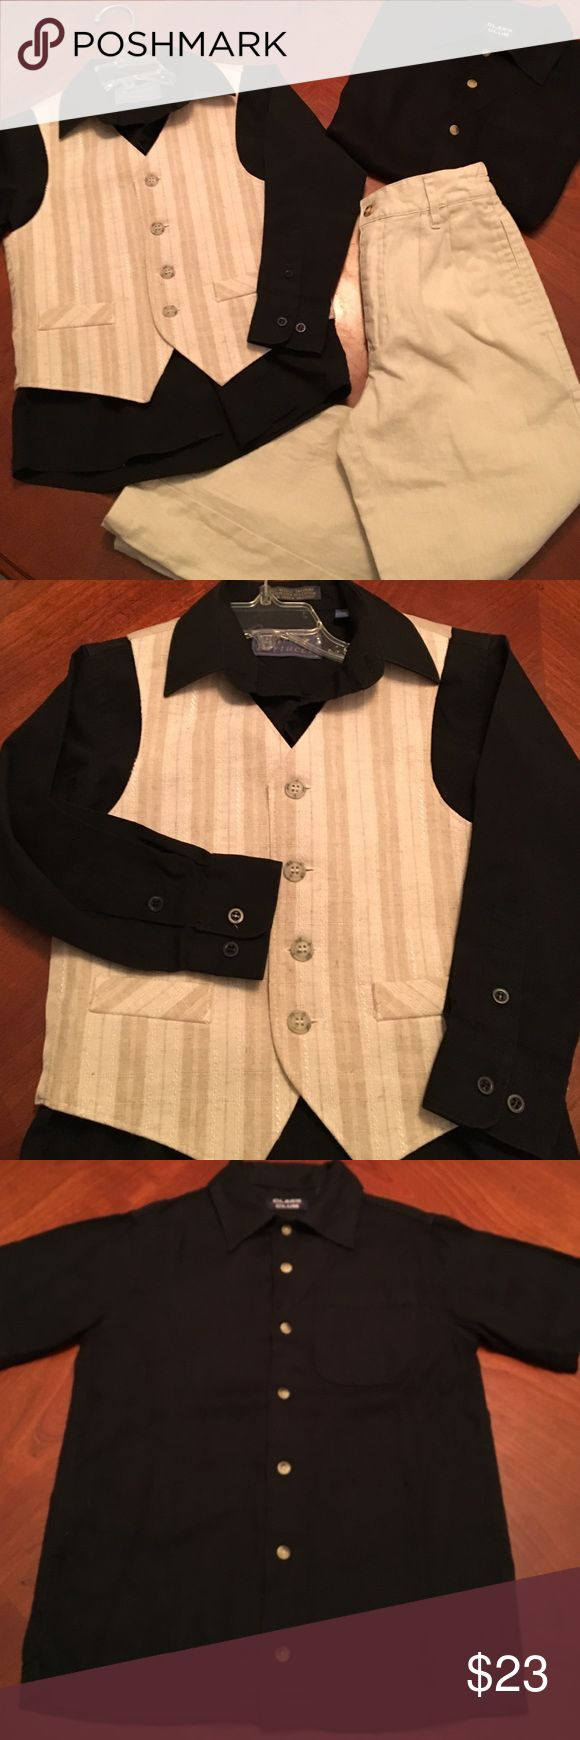 """Boys 4 piece Set. Sizes 6/7/8 Cotton/linen pants size Boys 7 with 26"""" inseam & 20"""" elastic zip up & Button waistline. Size 6 Button down black dress shirt with vest. And a Rayon Short Sleeve button down size 8.  Interchangeable sharp dressed outfits. Matching Sets"""